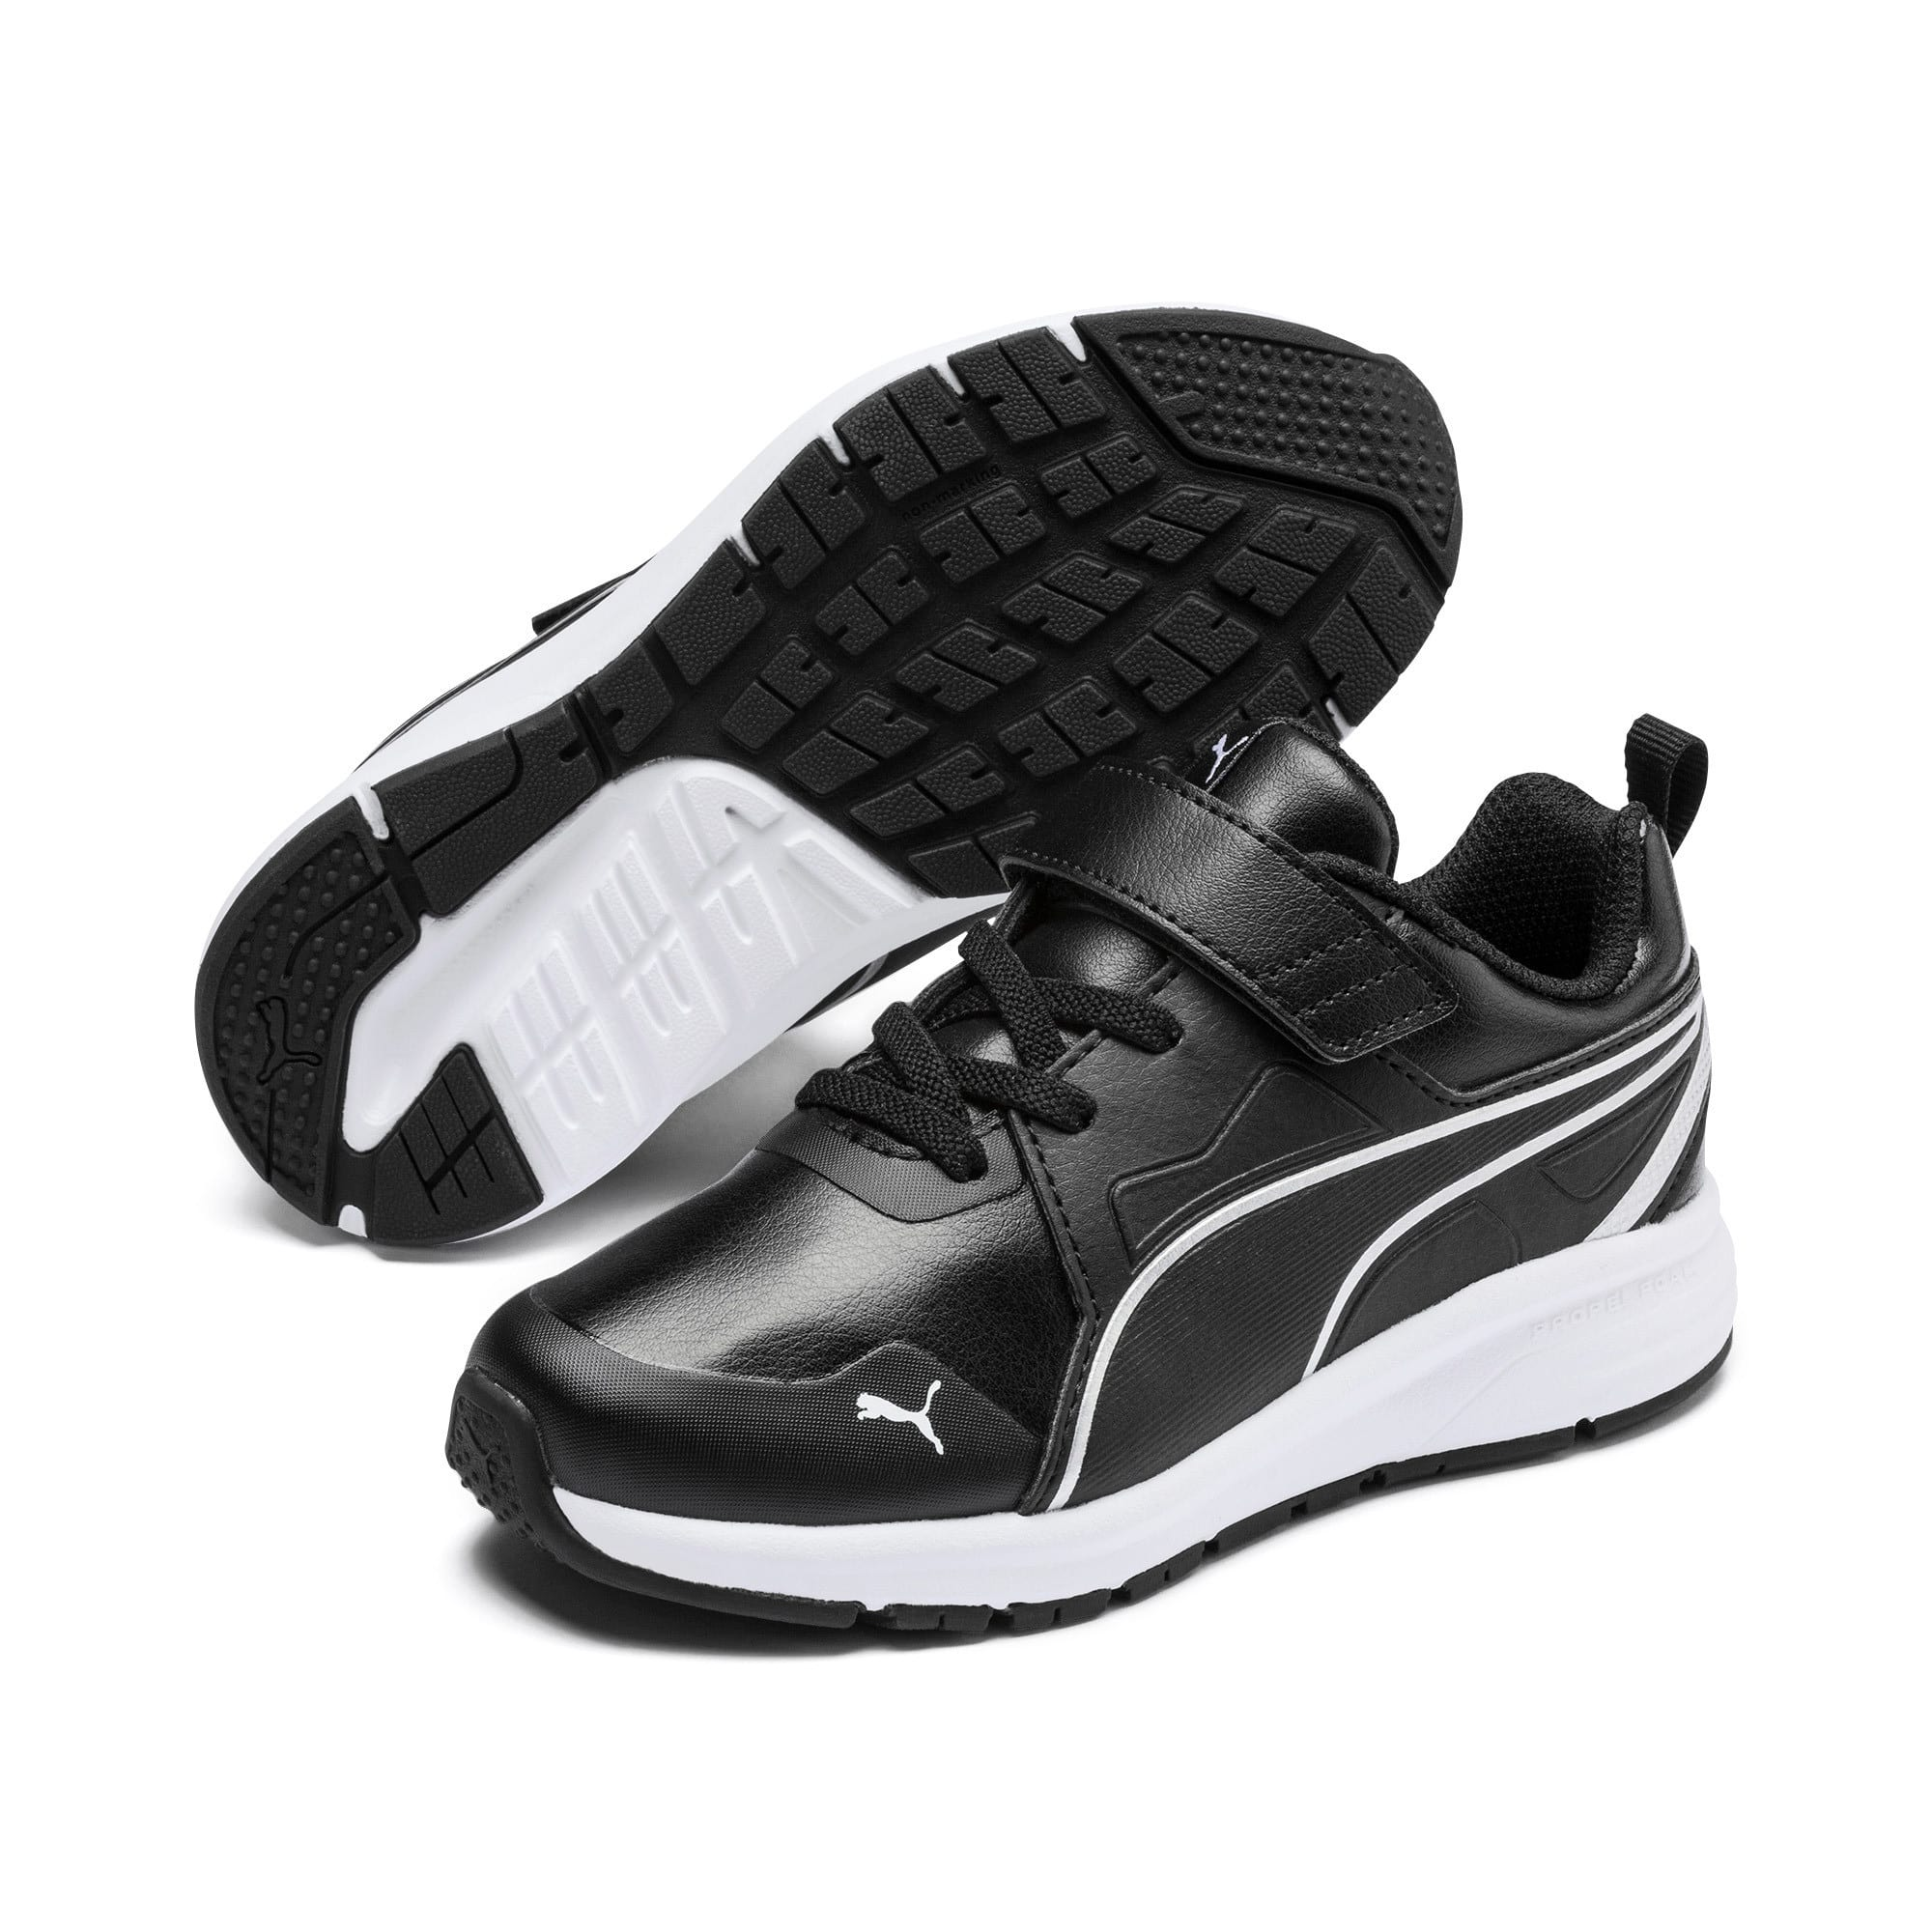 Thumbnail 2 of Pure Jogger SL Kids' Trainers, Puma Black-Puma Silver-White, medium-IND